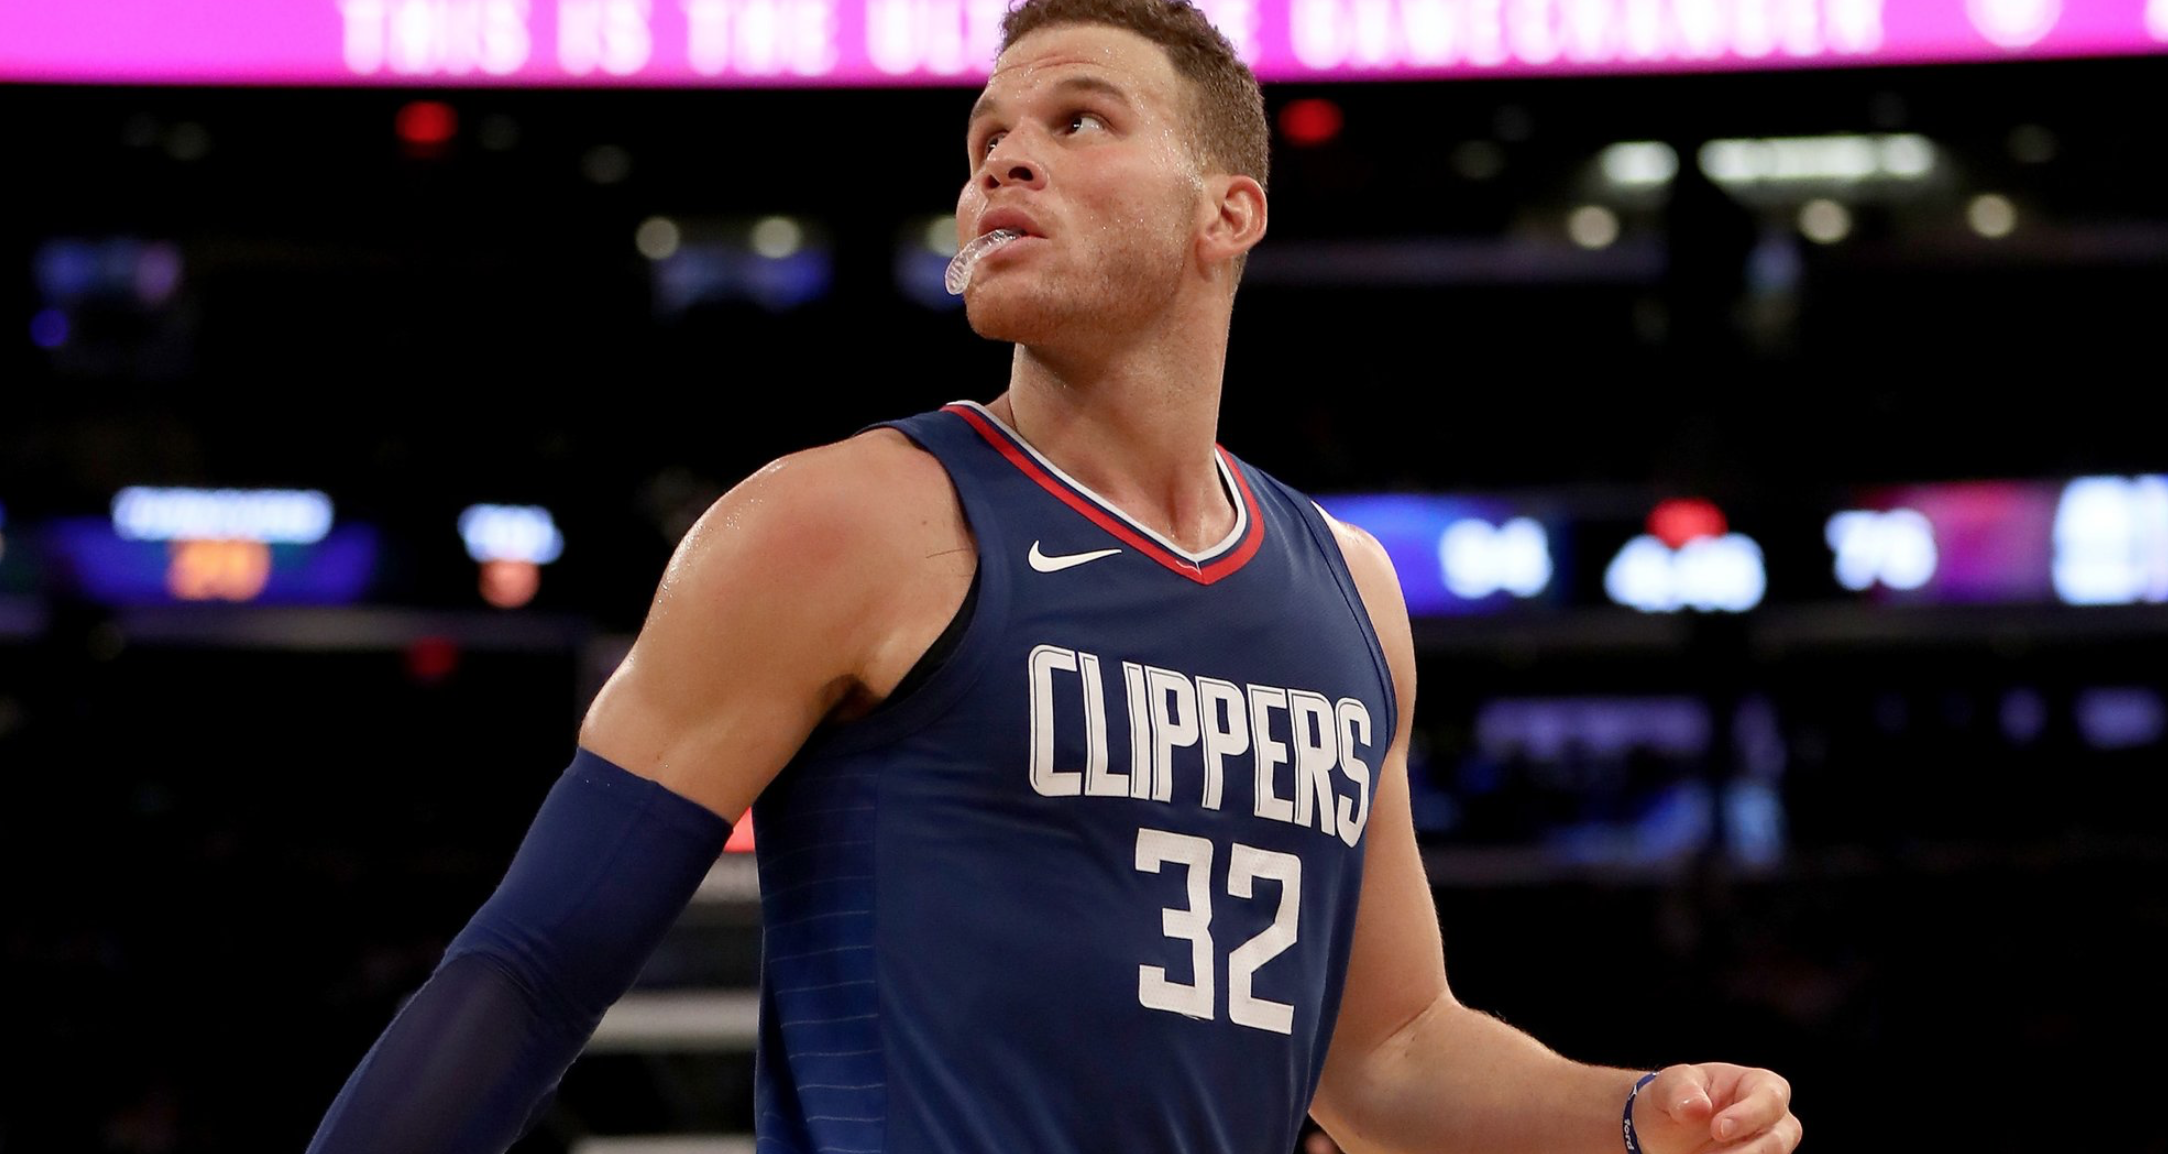 f6a83738b7c Blake Griffin Nearing Return For Clippers - CaliSports News